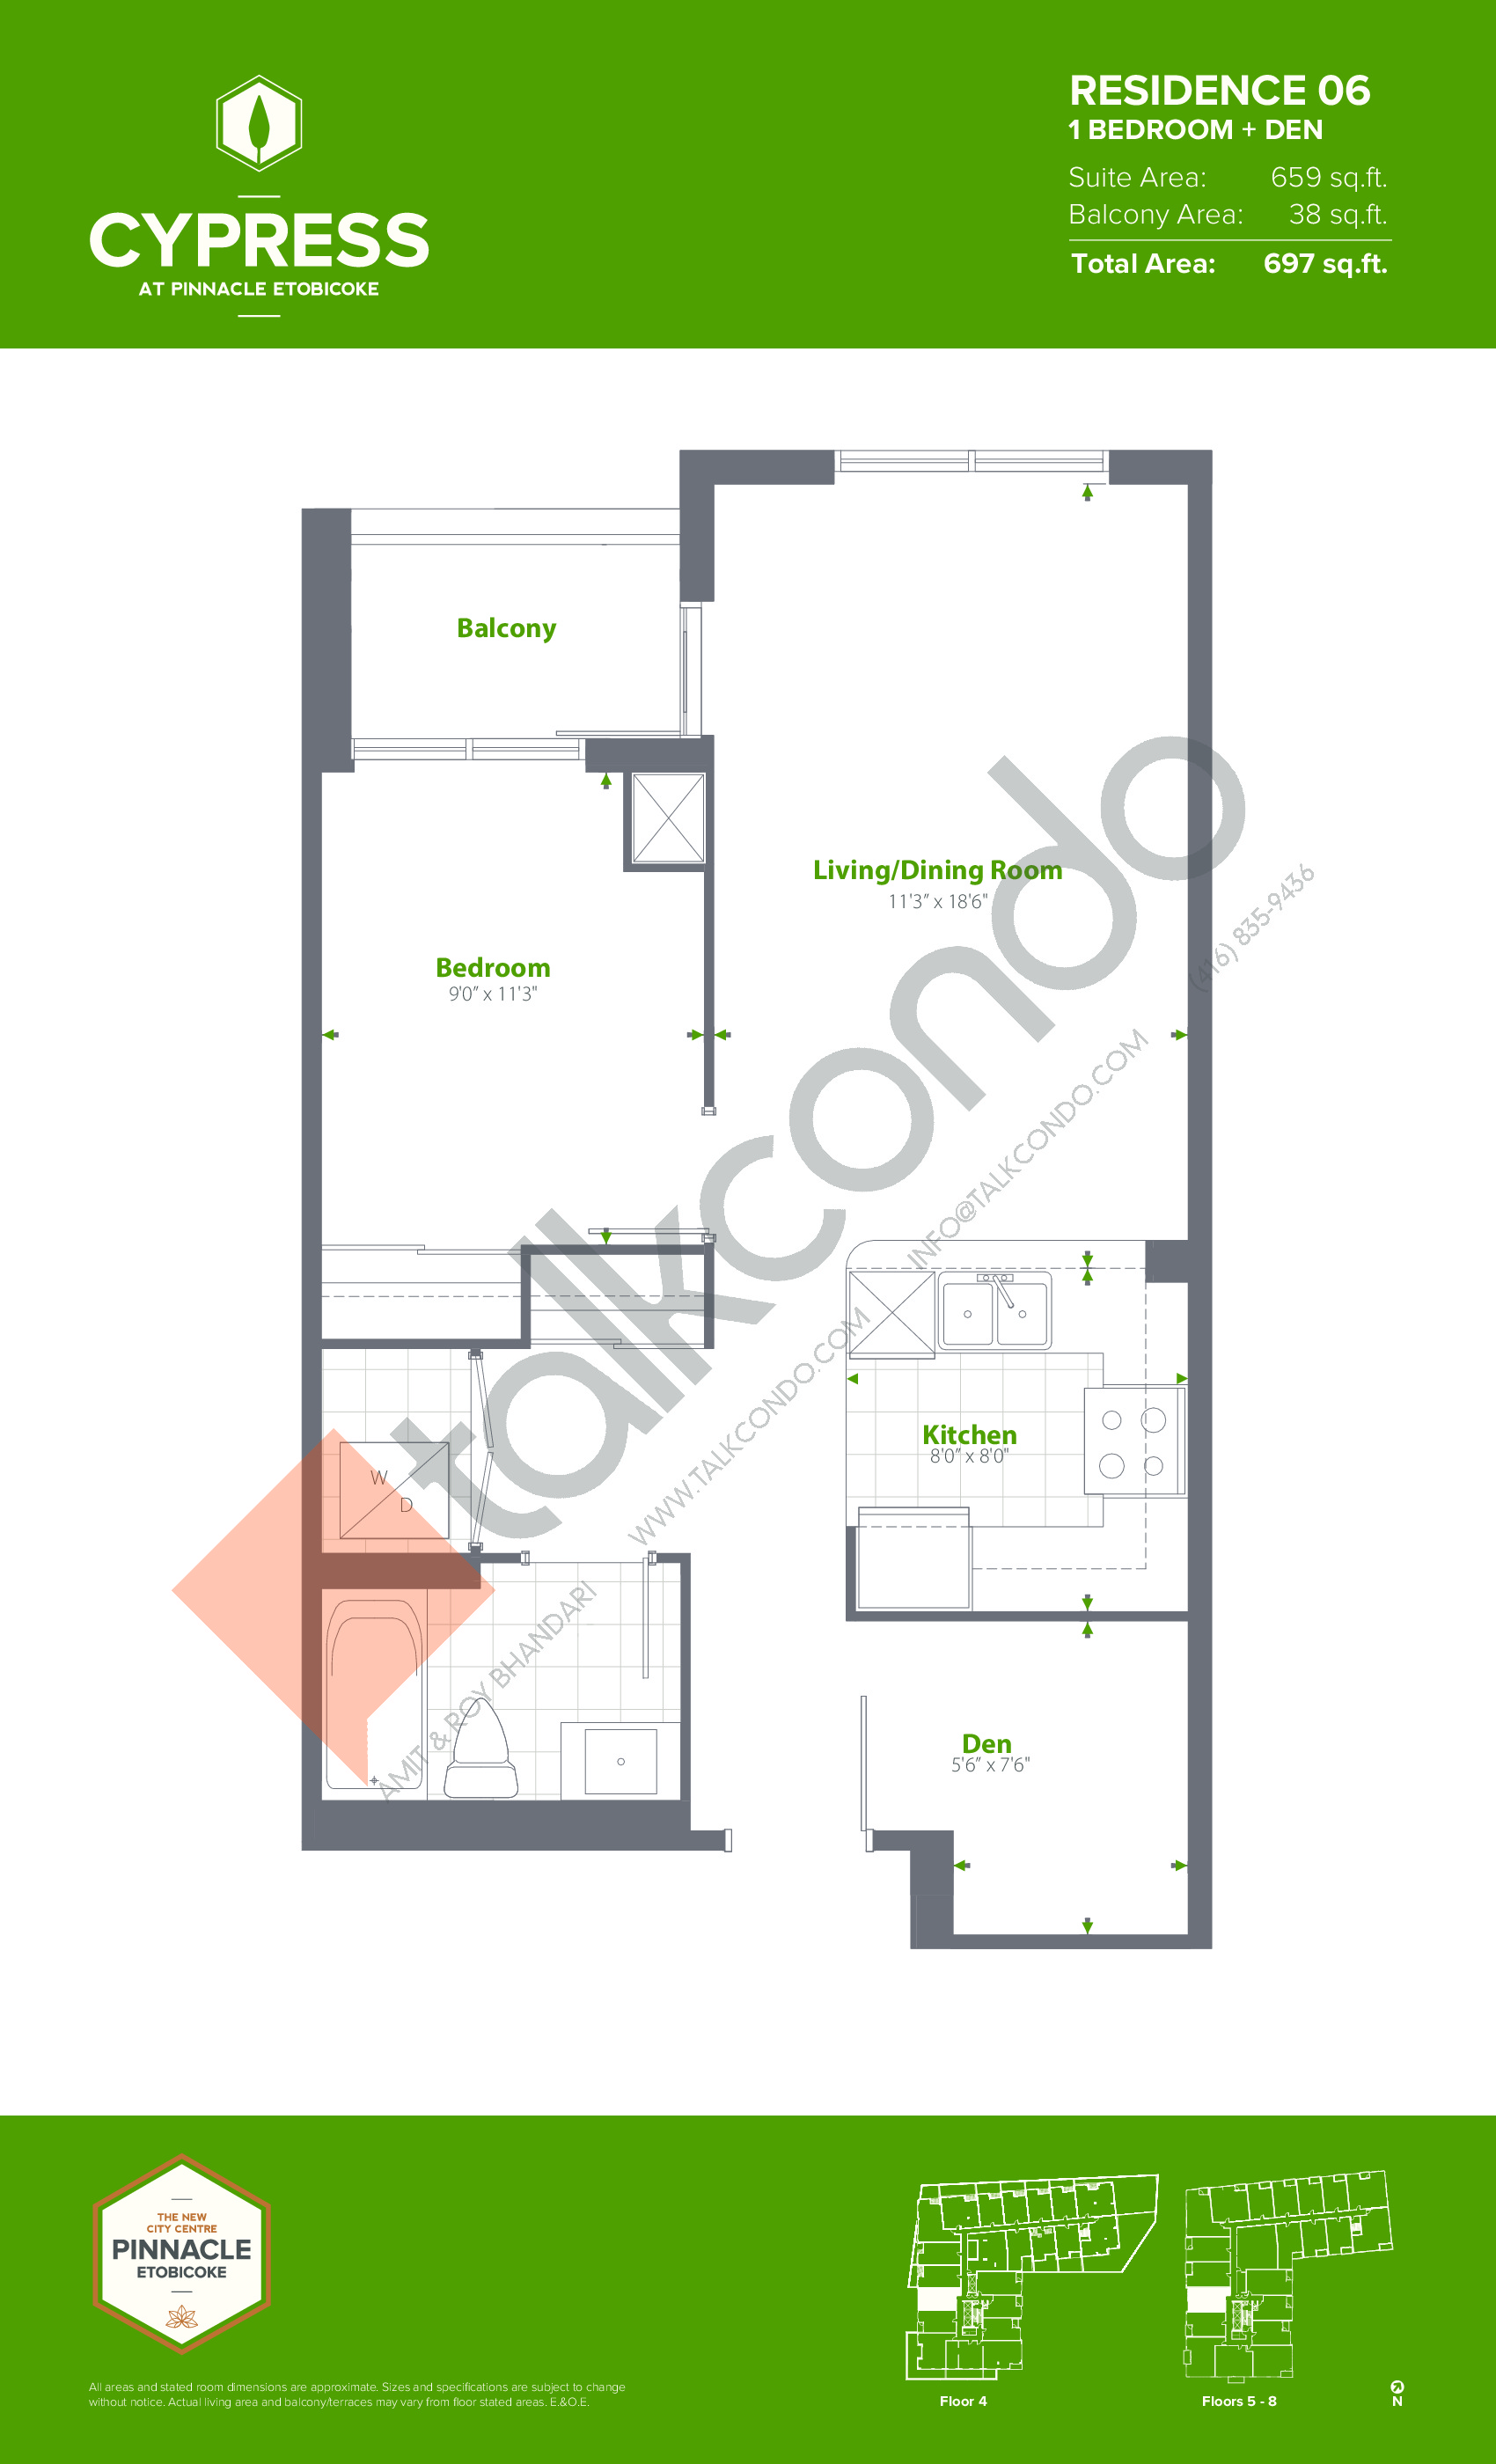 Residence 06 (Podium) Floor Plan at Cypress at Pinnacle Etobicoke - 659 sq.ft